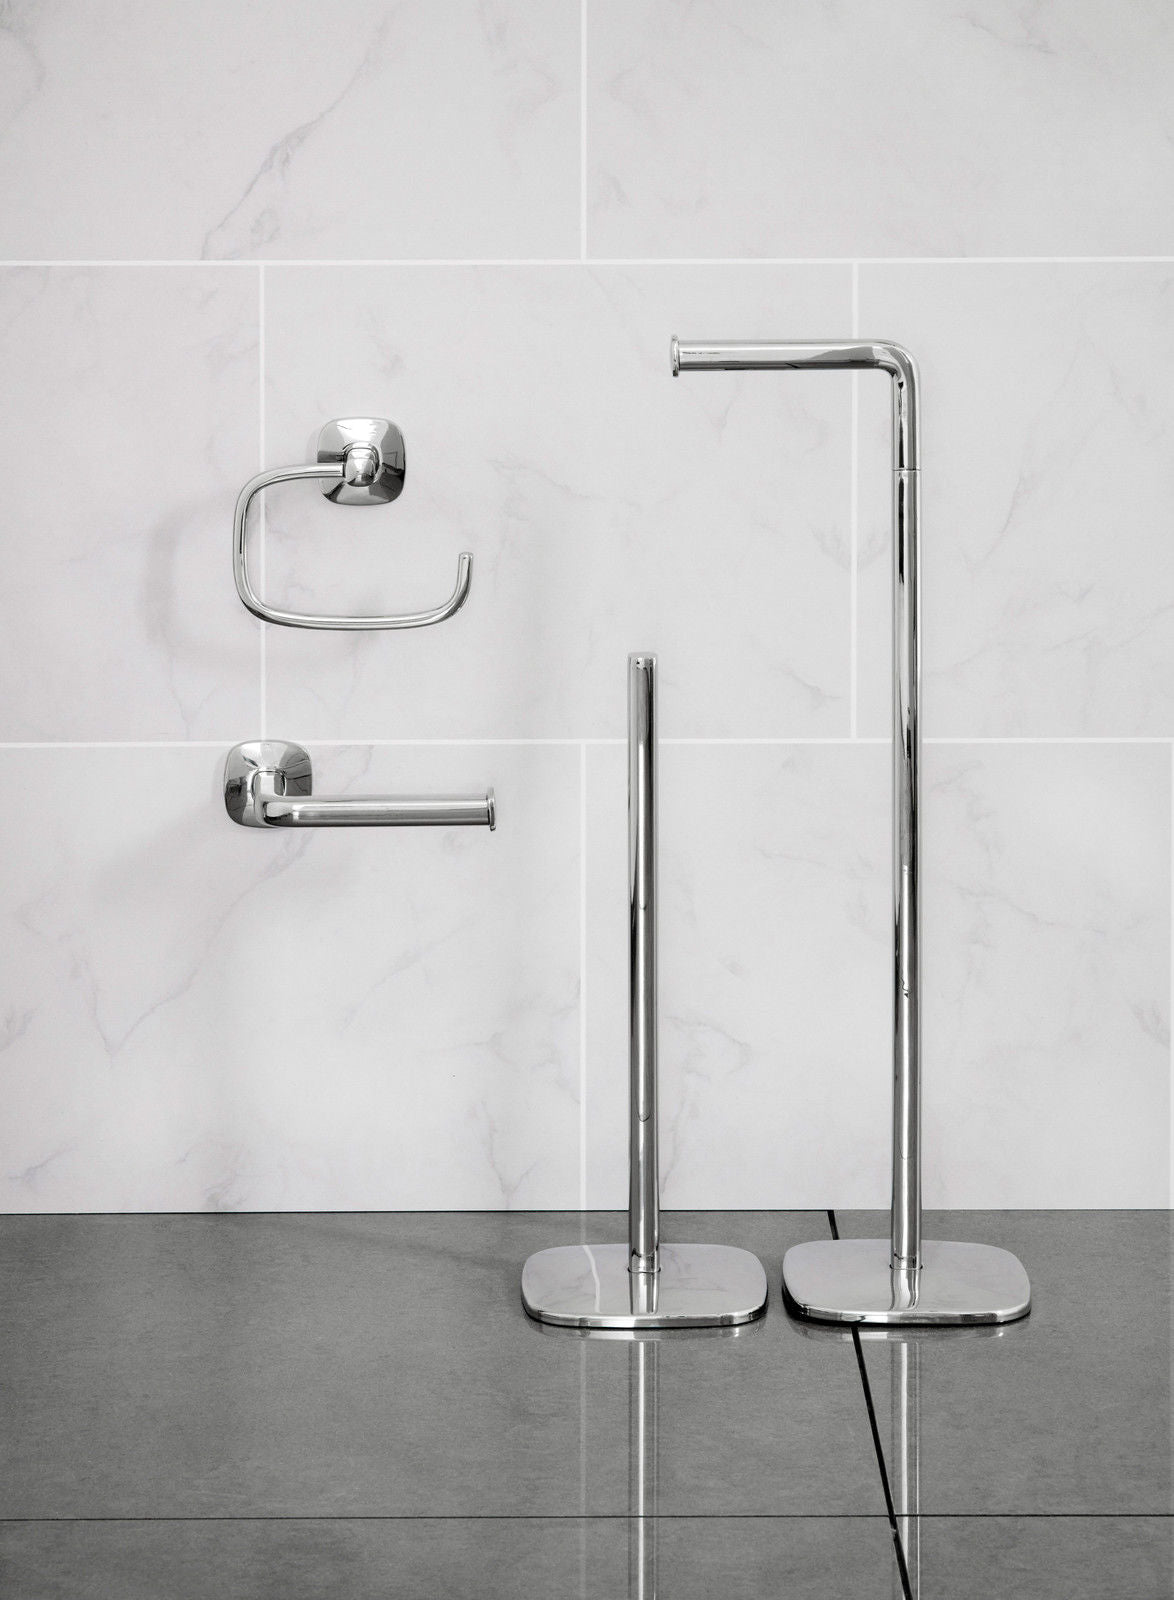 Robert Welch Burford Bathroom Toilet Roll Holder Swing, Polished ...